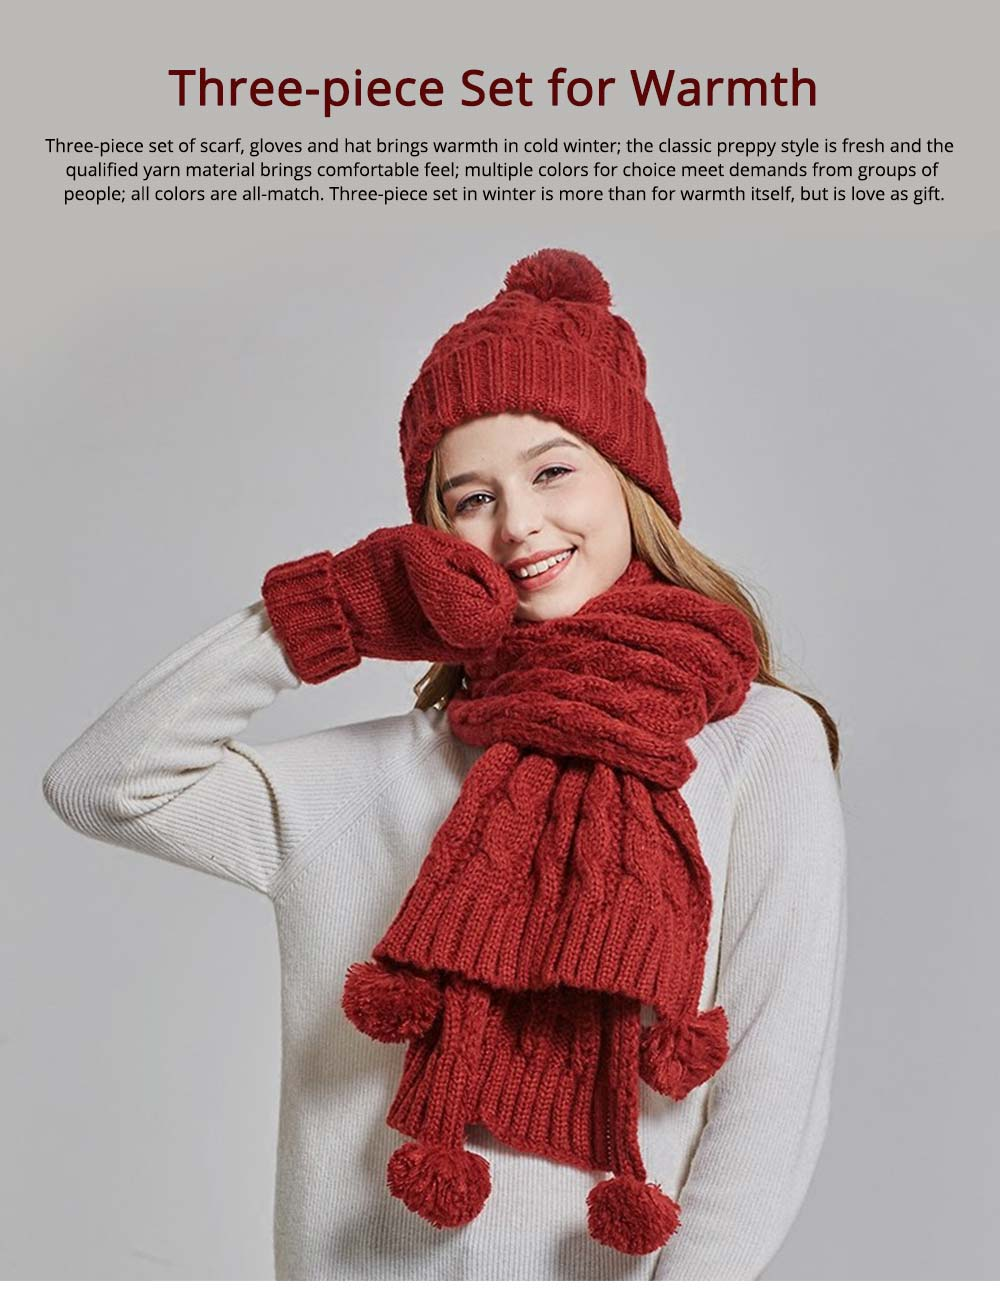 Gloves, Scarves & Hats for Women Anti-coldness Christmas Gift, Wool-added Thickened Korean Style Lovely Gift for Warmth 0